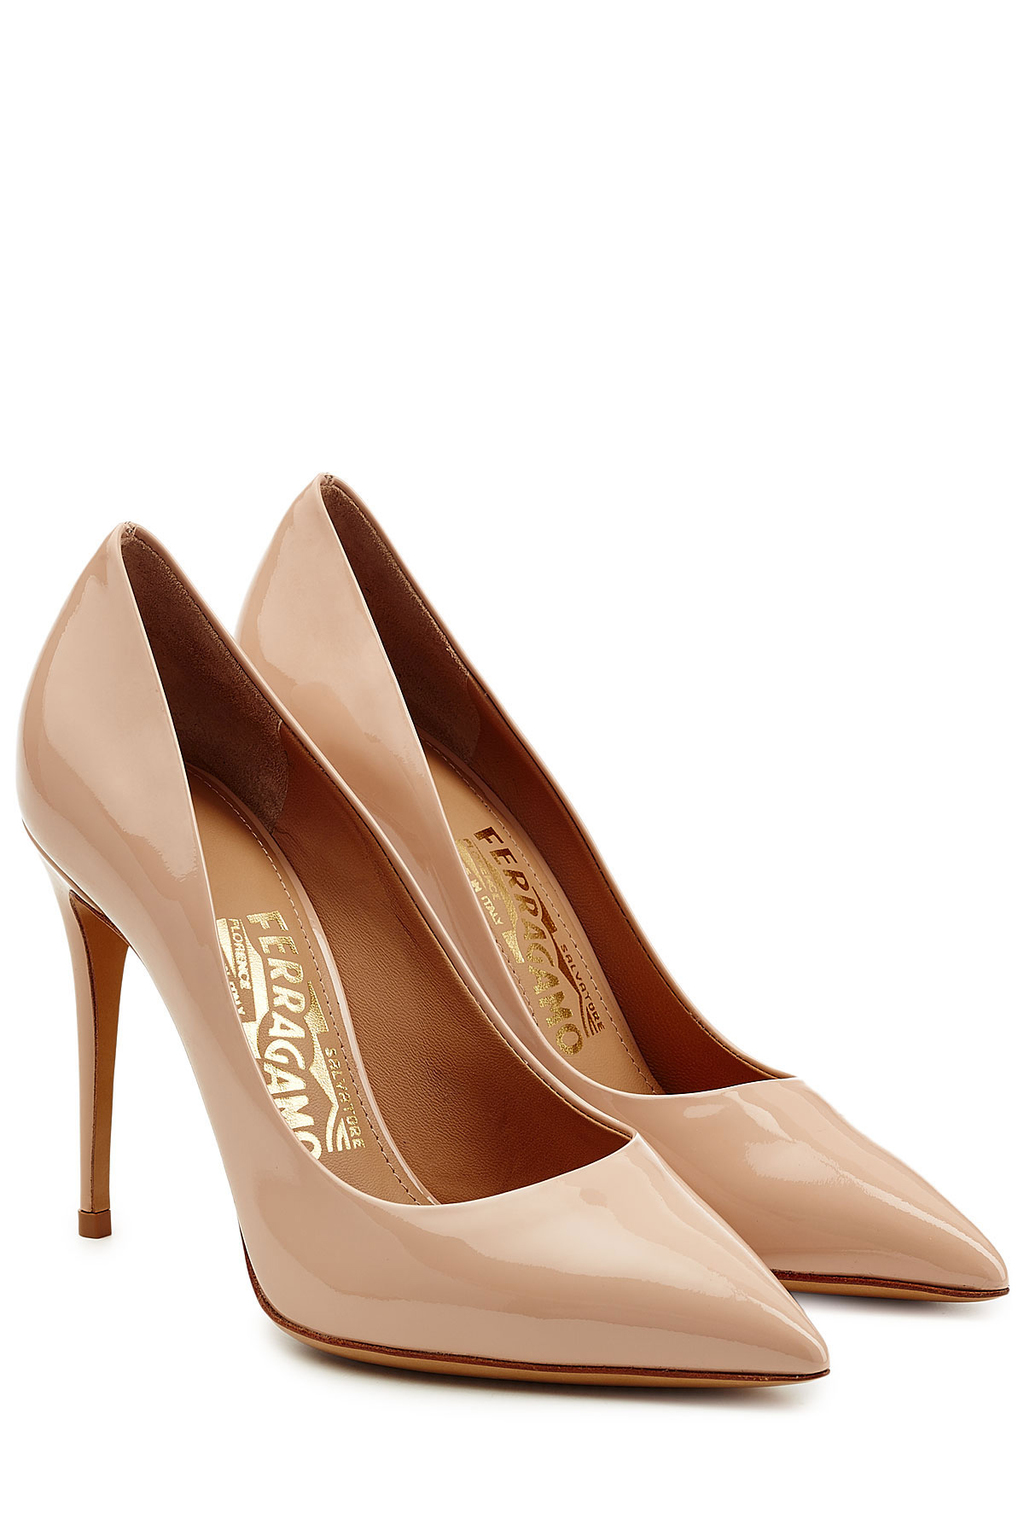 Patent Leather Pumps Rose - predominant colour: nude; occasions: evening; material: fabric; heel height: mid; heel: stiletto; toe: open toe/peeptoe; style: courts; finish: patent; pattern: plain; season: s/s 2016